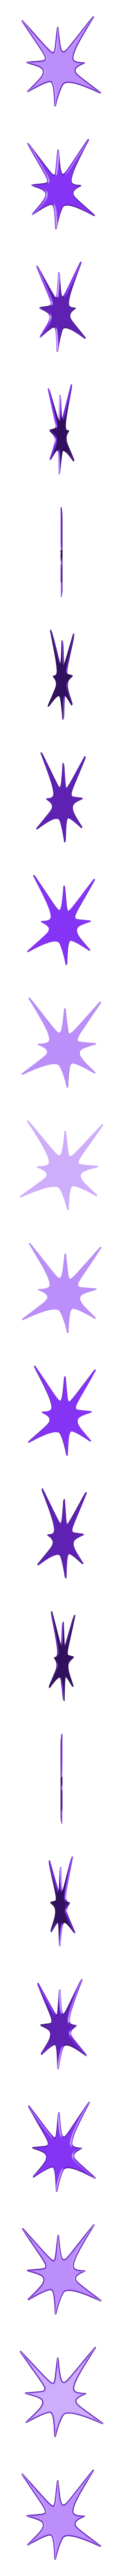 Space Decals_ Star B.stl Download free STL file Space Decals • 3D printing template, Hom3d